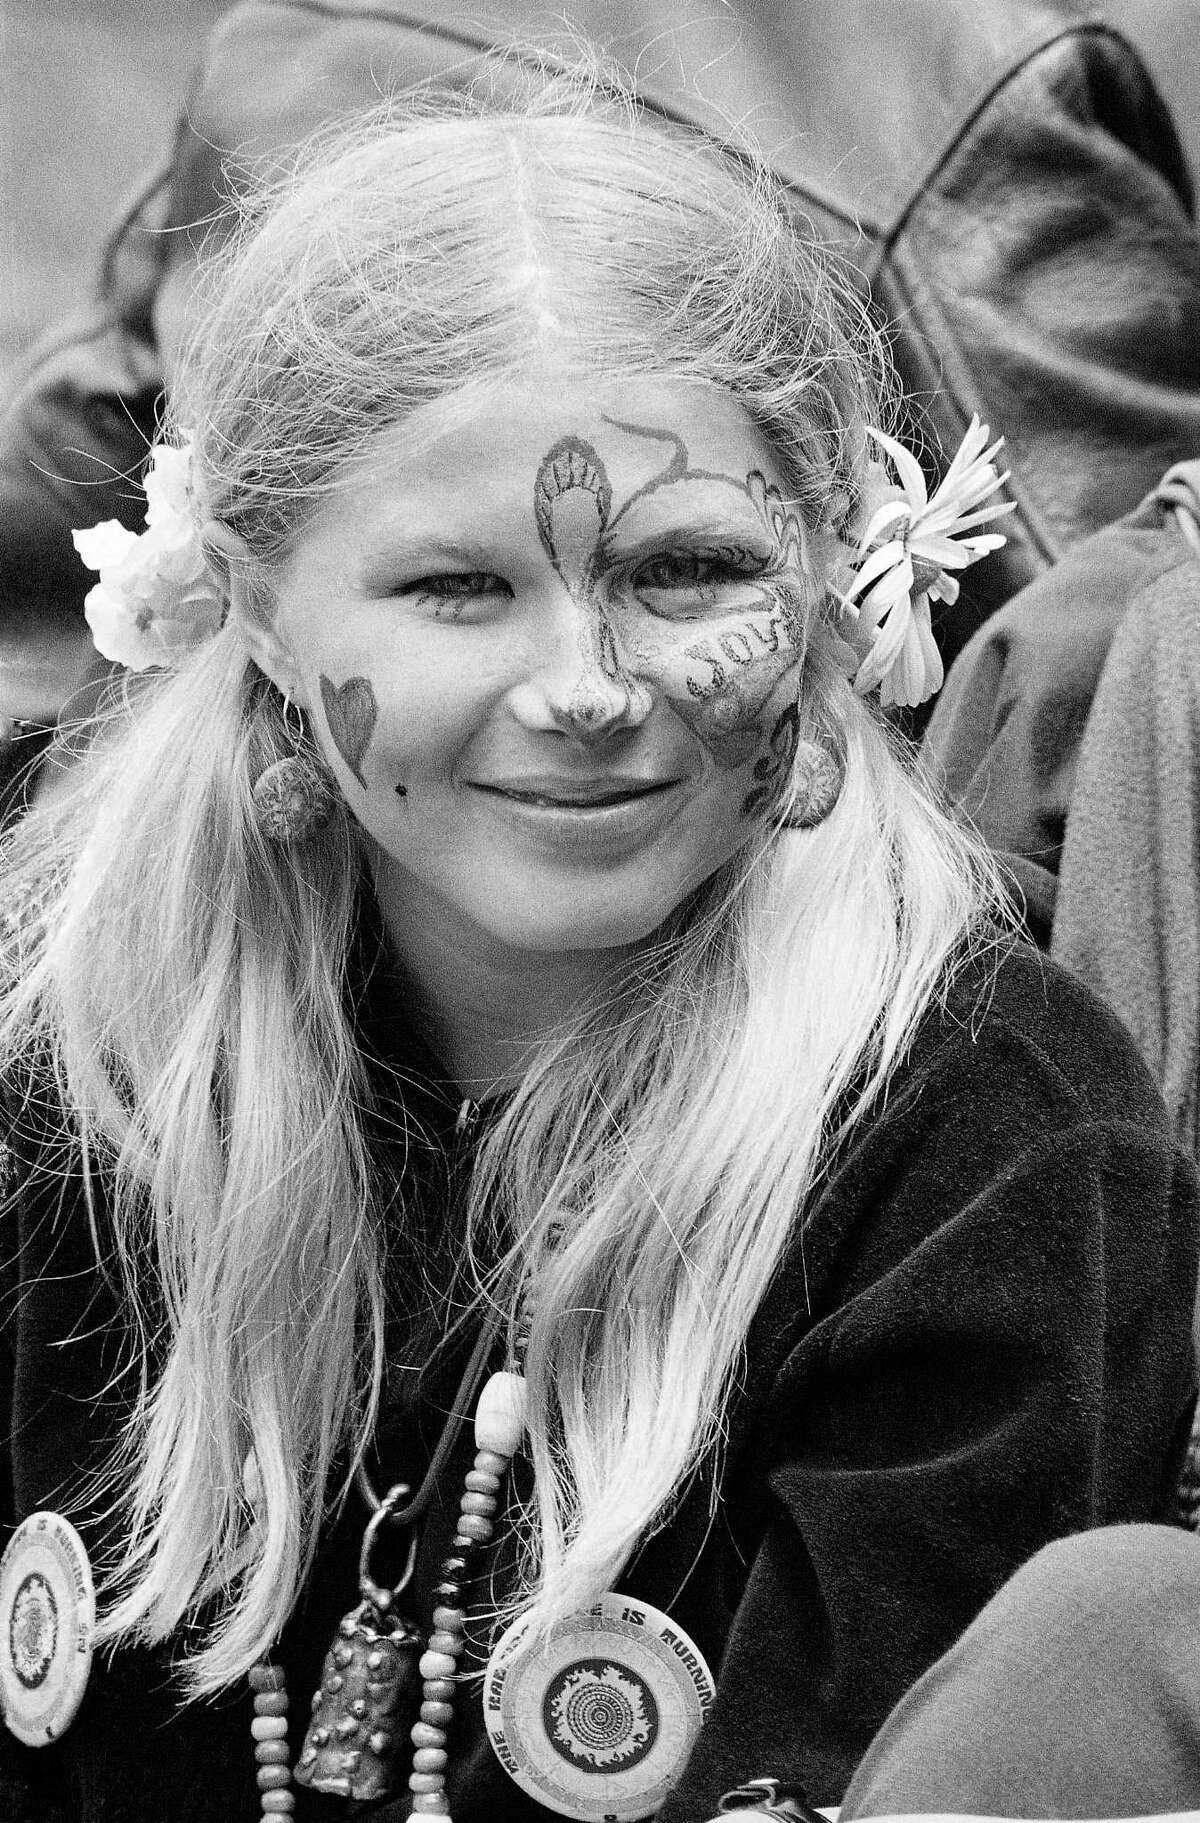 ADVANCE FOR USE TUESDAY, JUNE 13, 2017 AND THEREAFTER-FILE - In this Thursday, June 21, 1967 file photo, Judy Smith, wearing face paint and flowers in her hair, smiles as she and others gather at Golden Gate Park in San Francisco. Fifty years ago, throngs of American youth descended on San Francisco to join a cultural revolution. (AP Photo/Robert W. Klein, File)